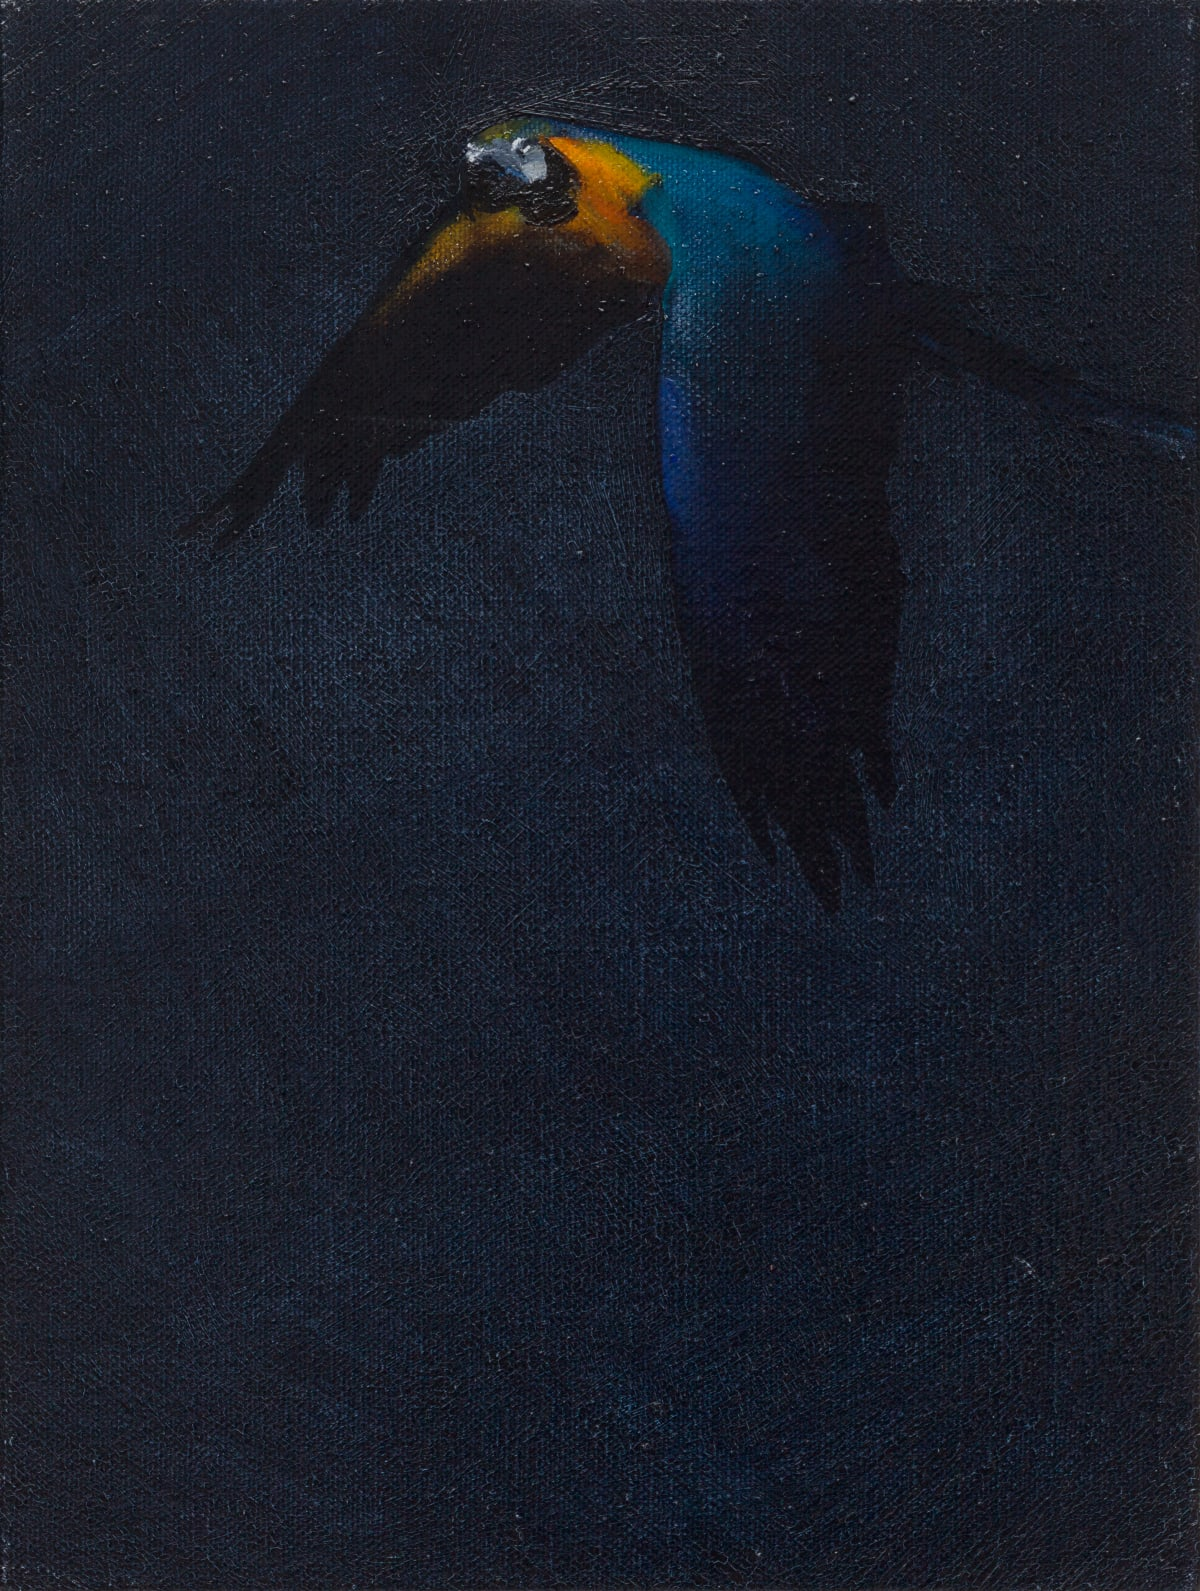 Matthew Kentmann, Blue & Gold 5, 2019